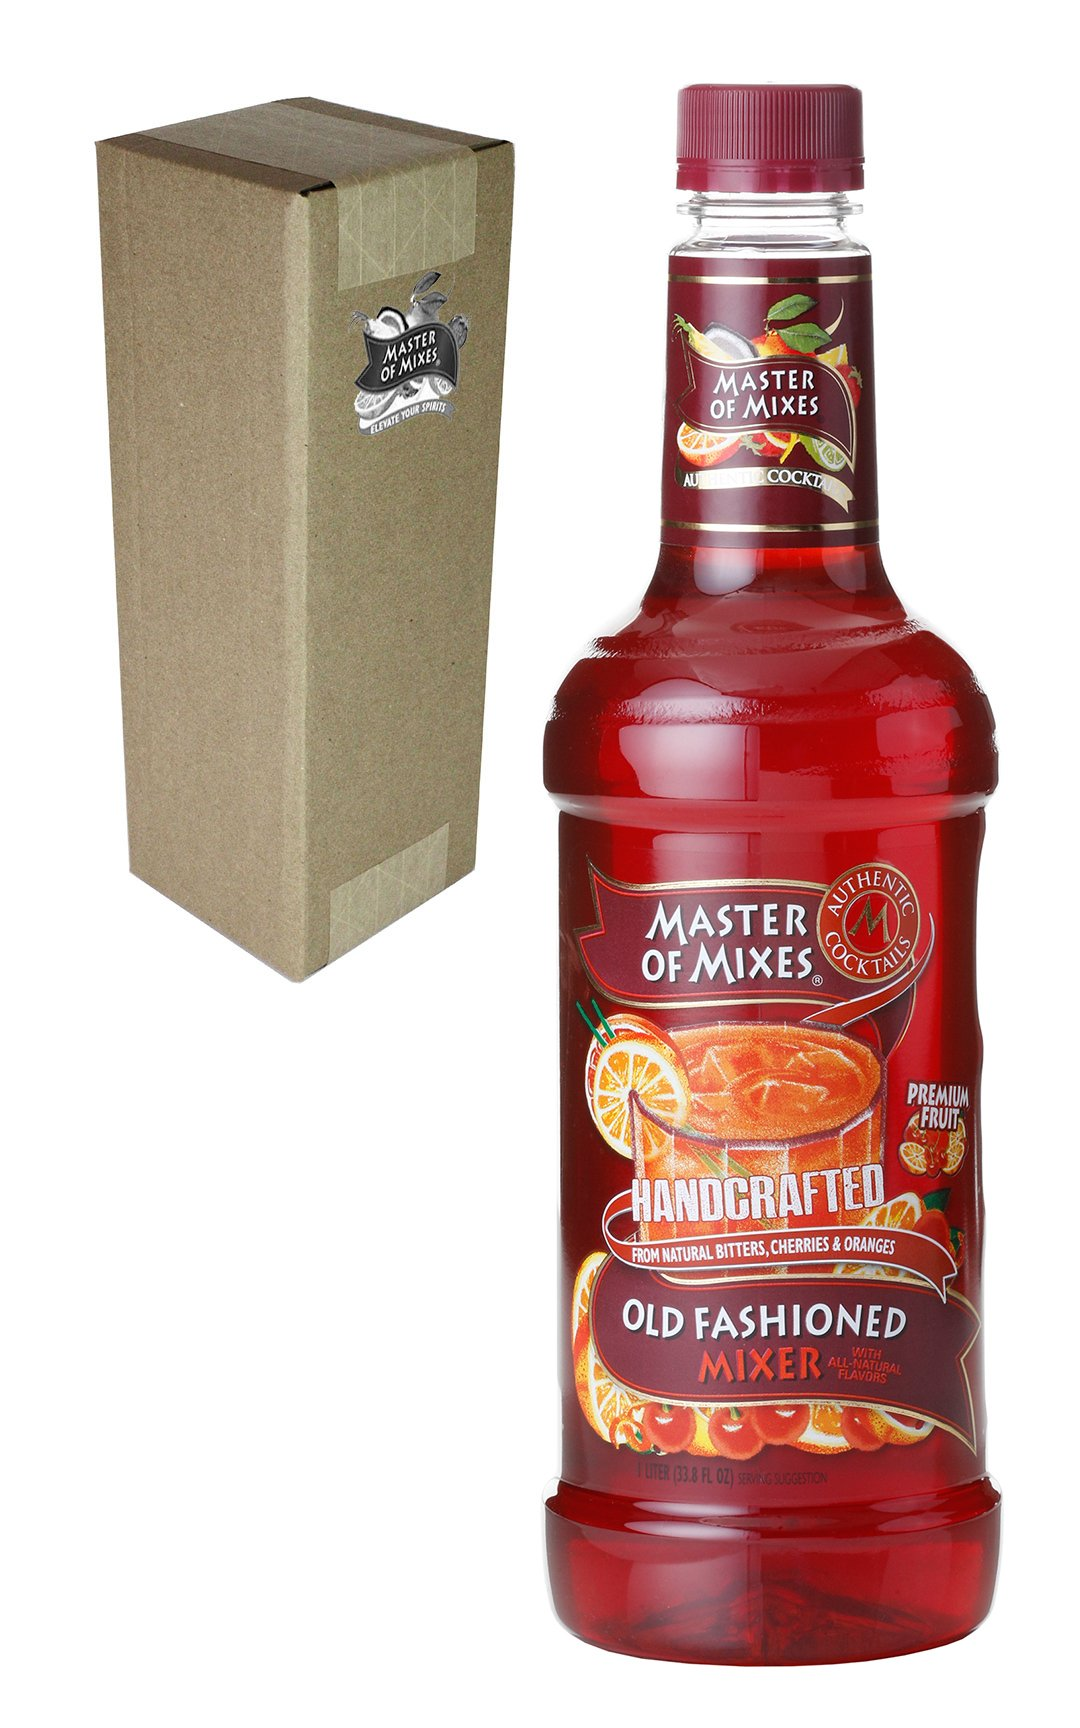 Master of Mixes Old Fashioned Drink Mix, Ready To Use, 1 Liter Bottle (33.8 Fl Oz), Individually Boxed